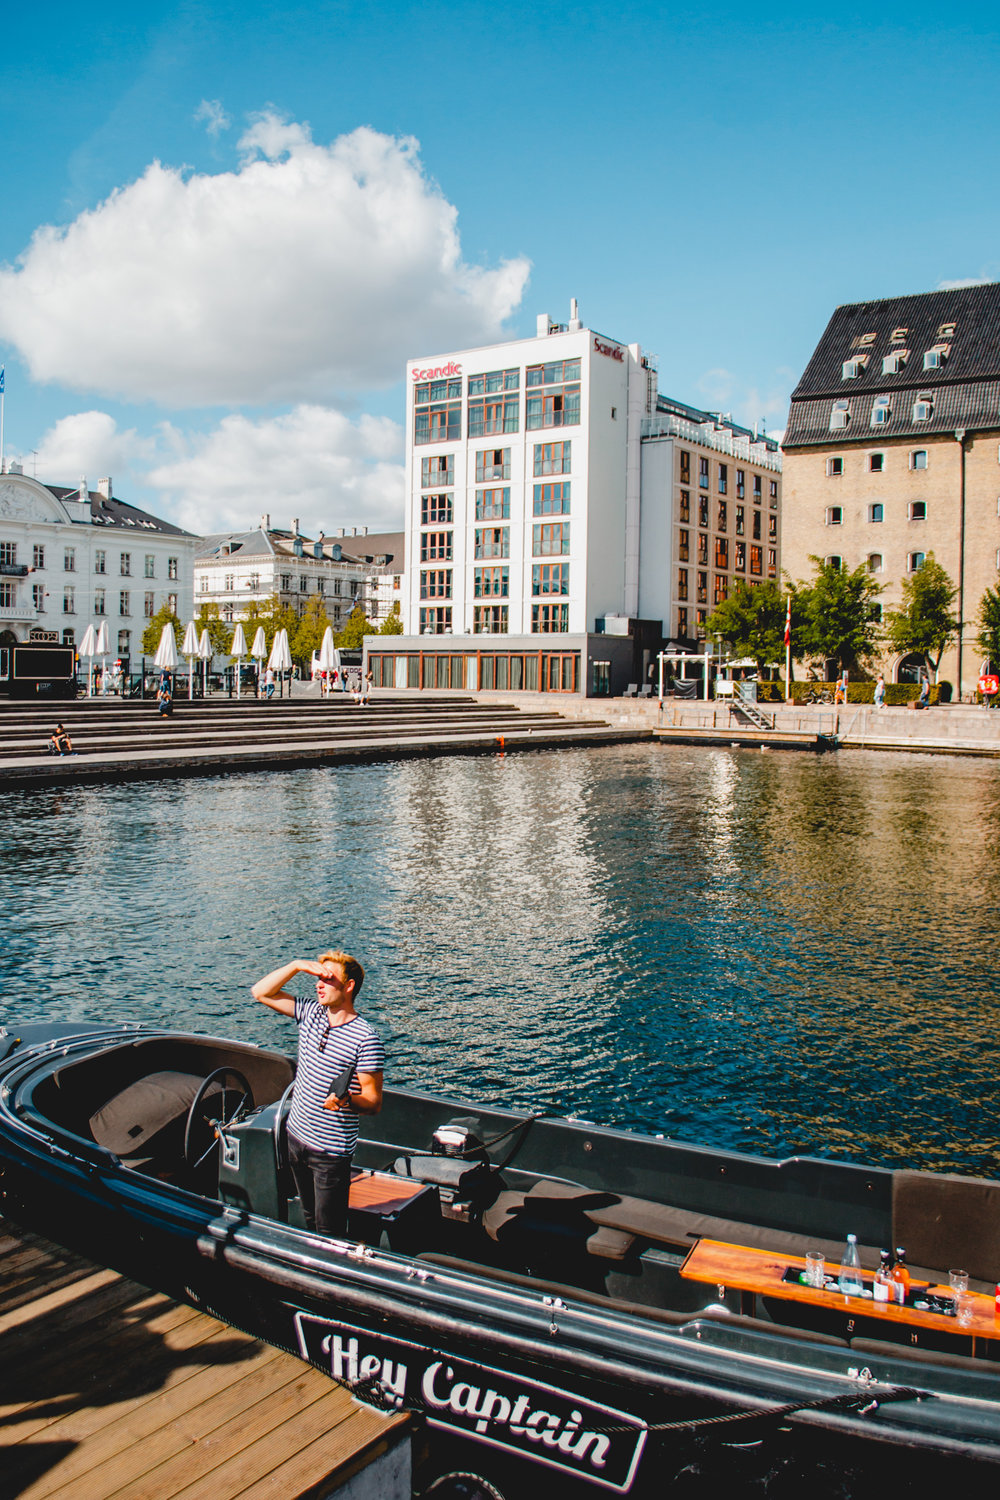 Get away from the crowds and meet your Captain at the Ofelia Plads next to the Royal Danish Playhouse.